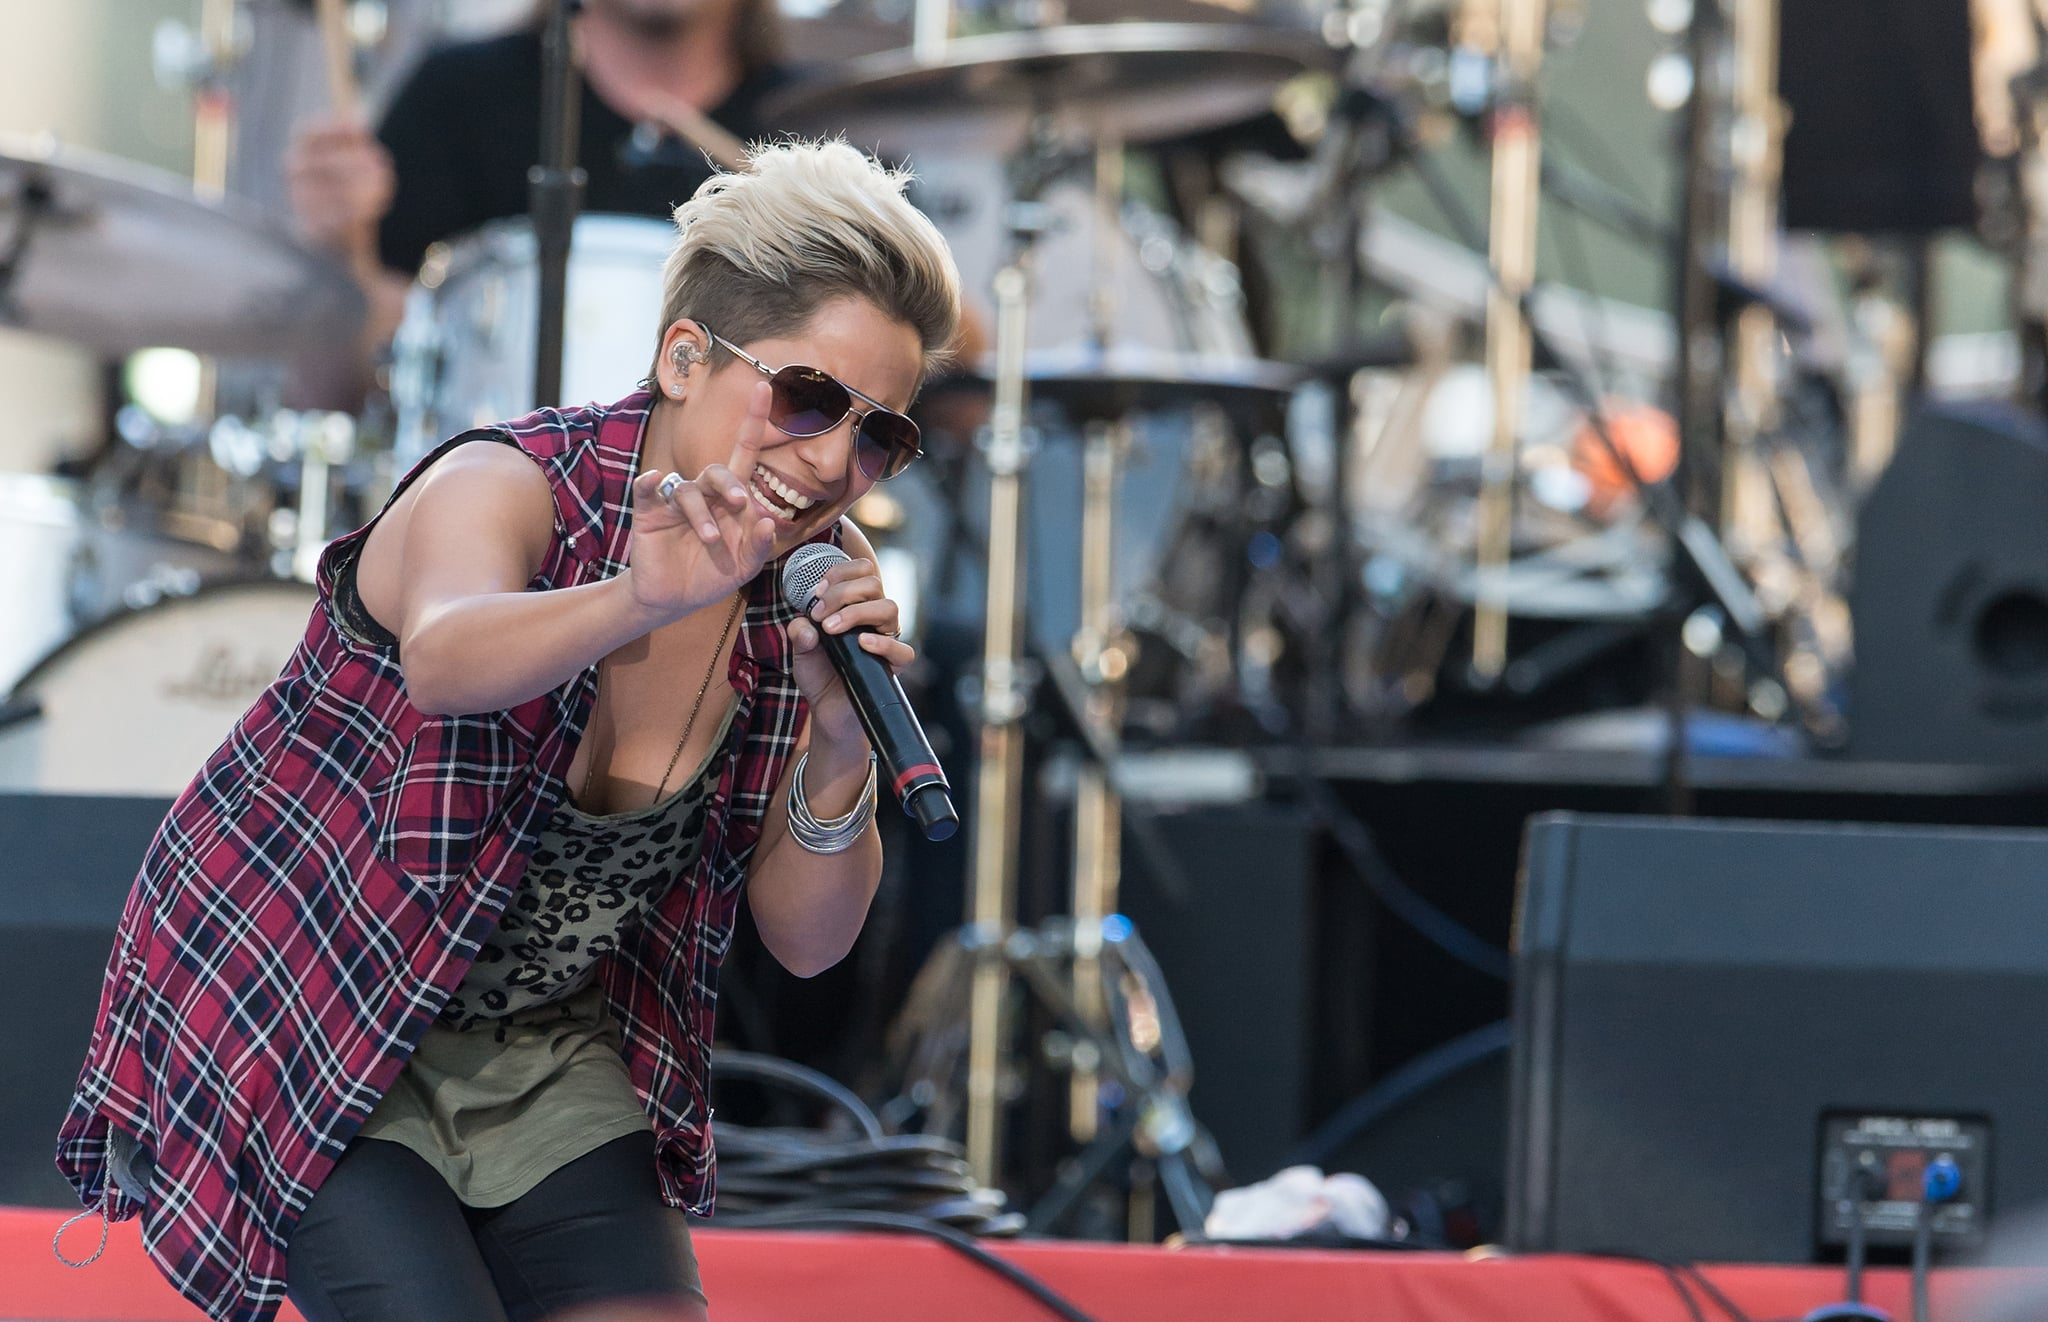 PHILADELPHIA, PA - JULY 04:  Singer Vicci Martinez performs during the 2014 Philly 4th Of July Jam>on July 4, 2014 in Philadelphia, Pennsylvania.  (Photo by Gilbert Carrasquillo/Getty Images)